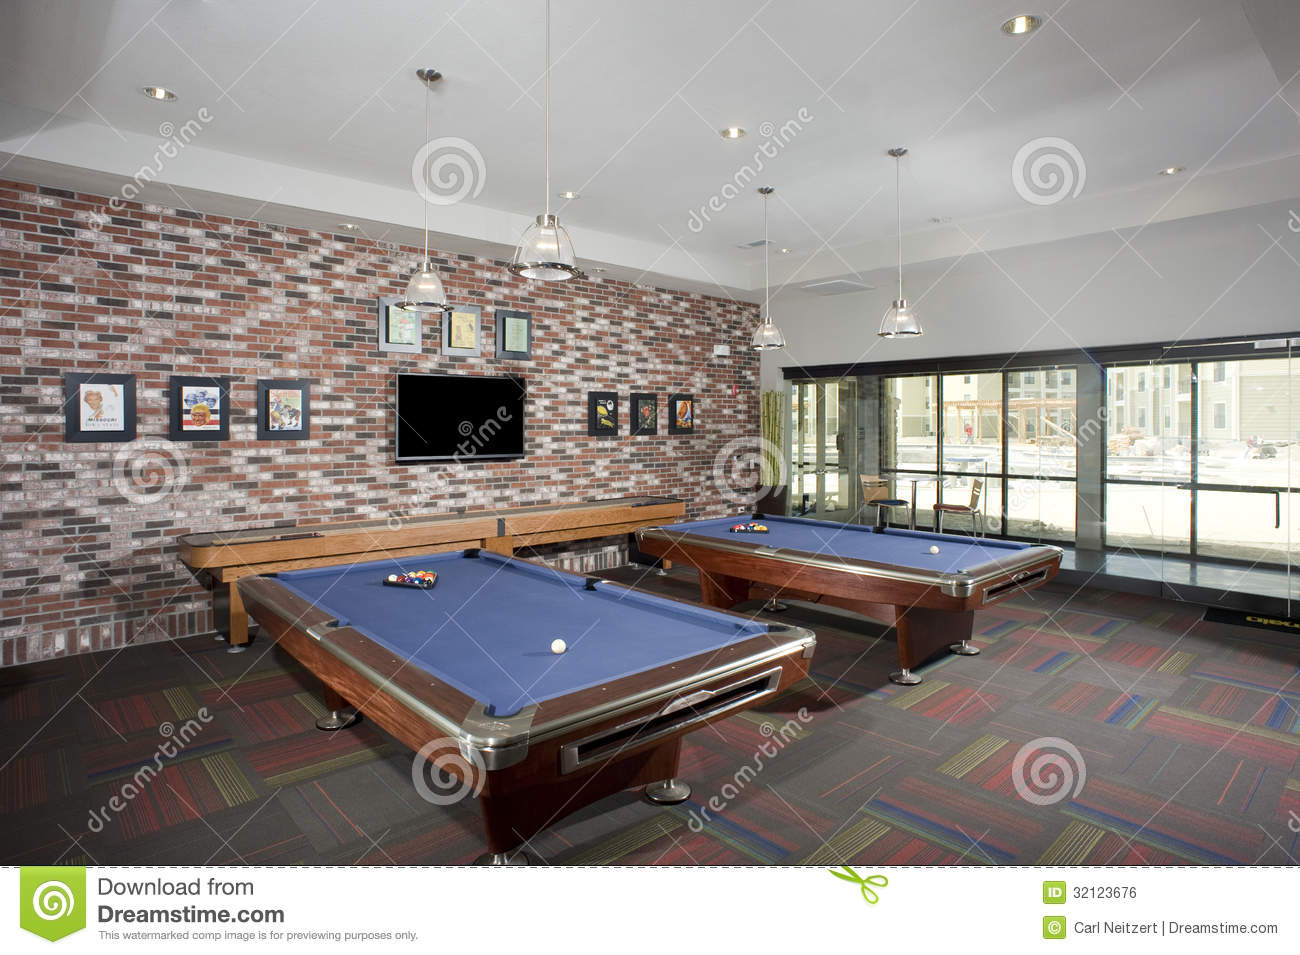 Small billiards room royalty free stock image image - Smallest room for pool table ...